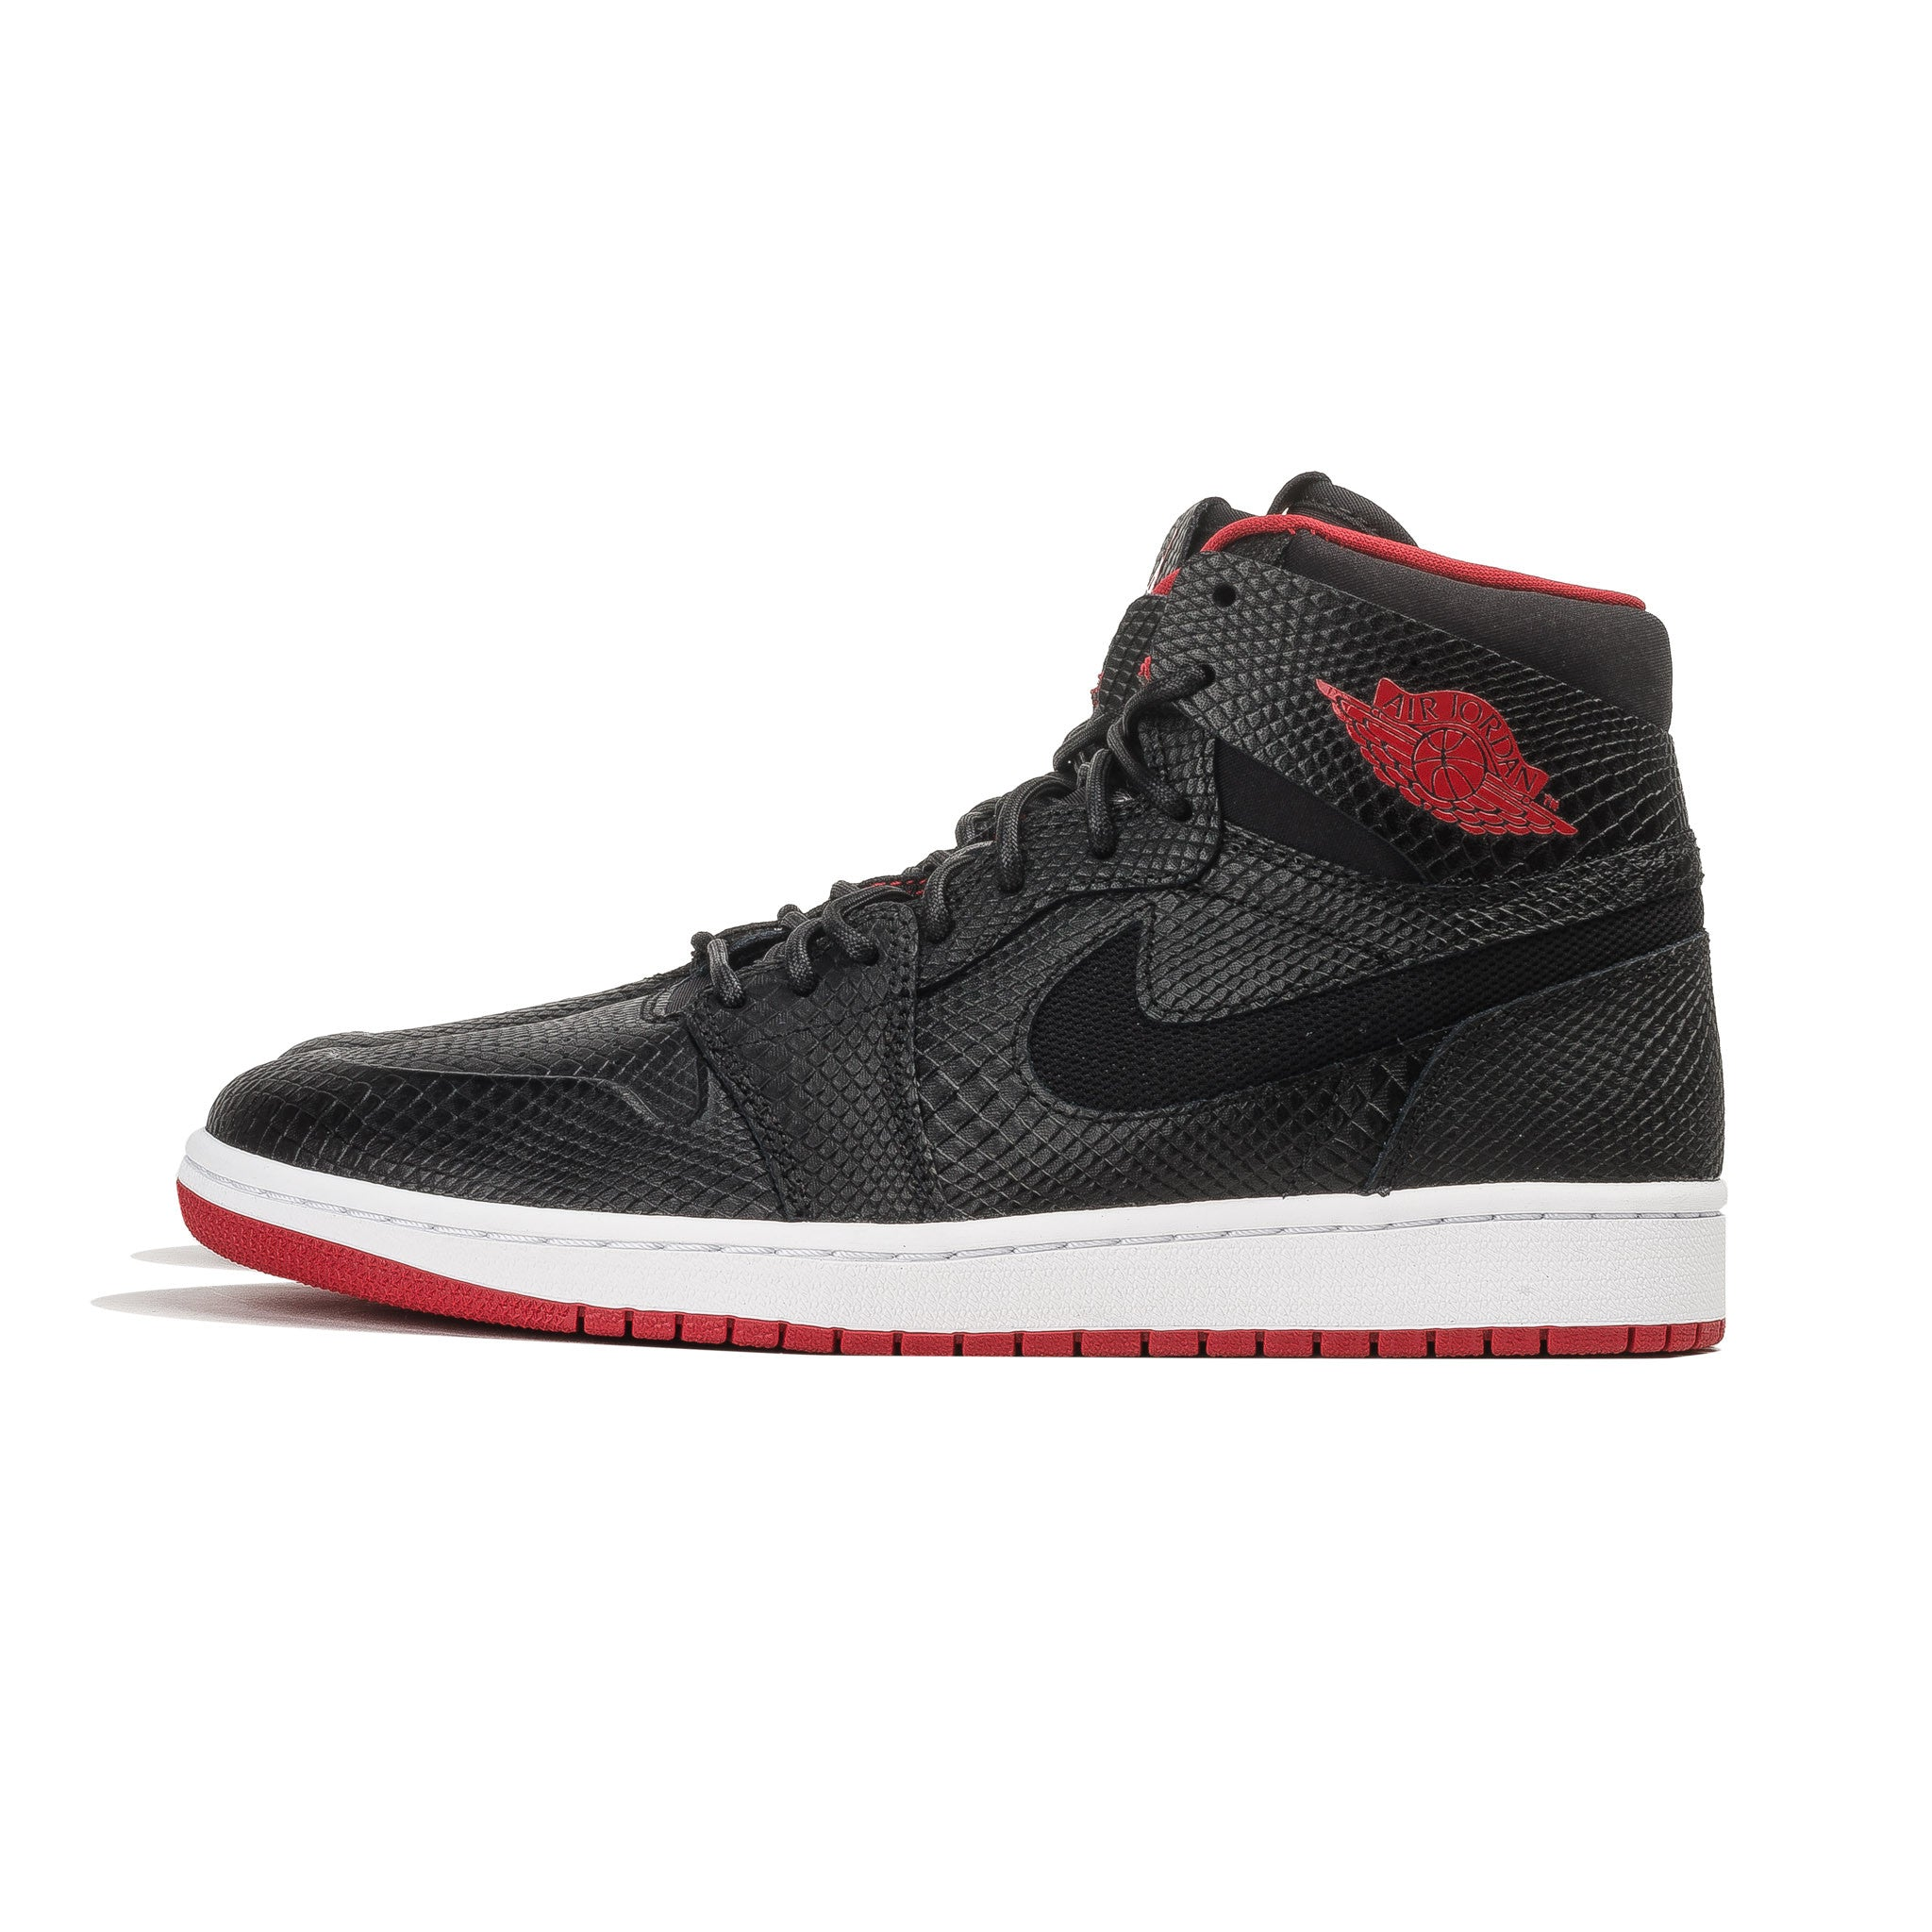 Air Jordan 1 Retro Nouv 819176-001